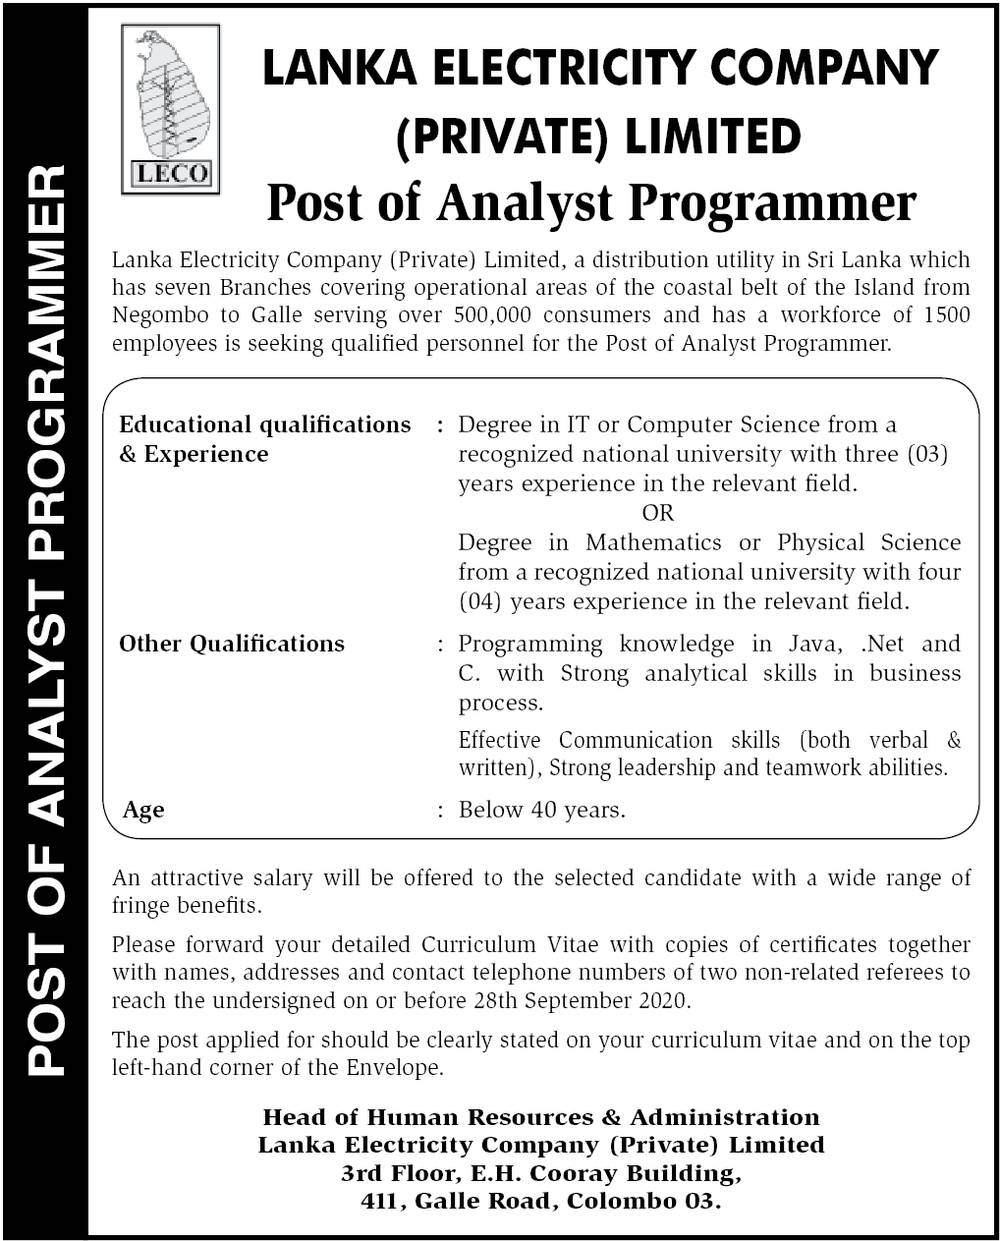 Analyst Programmer - Lanka Electricity Company (Private) Limited